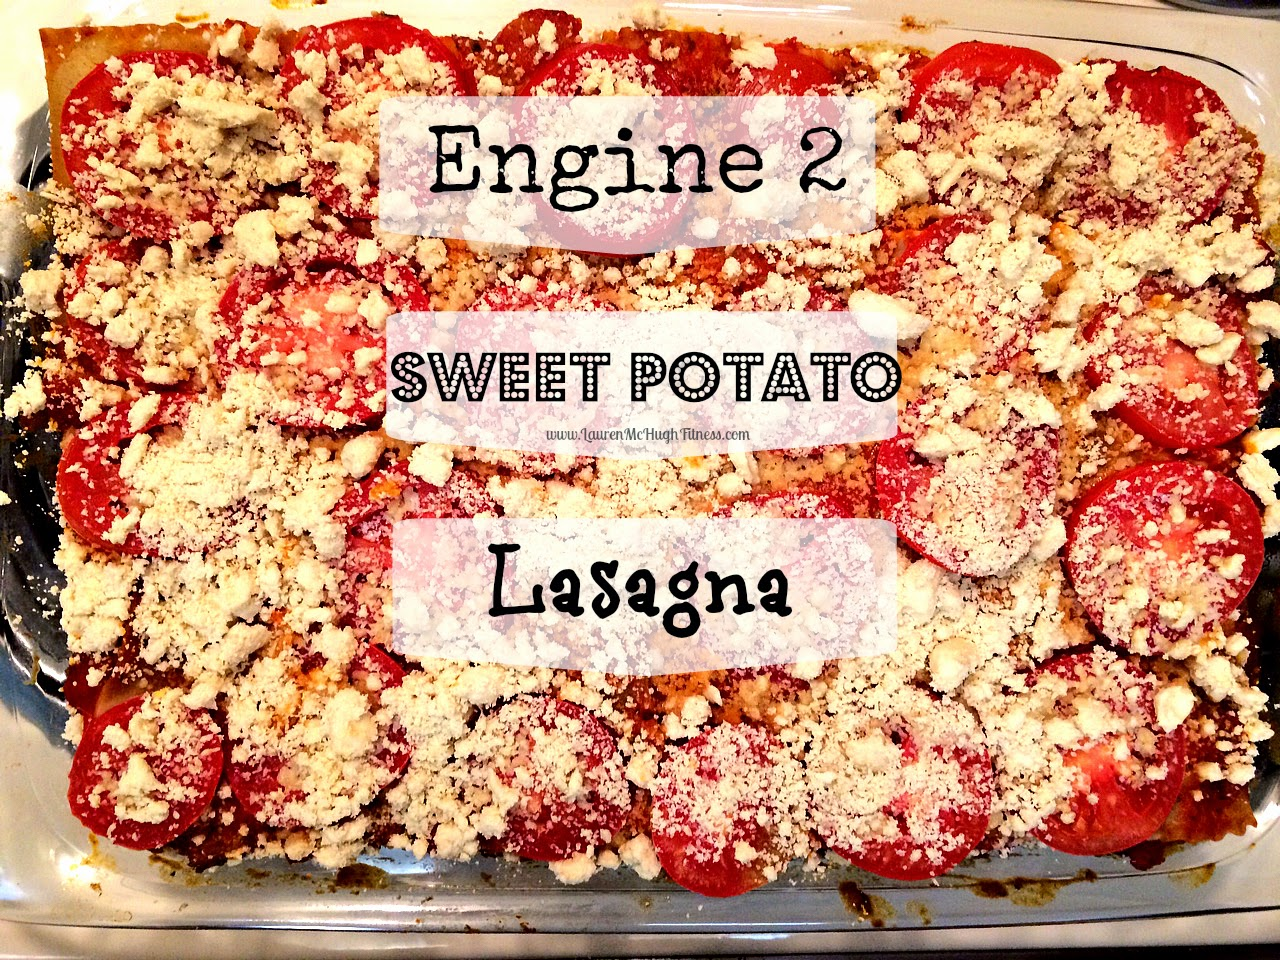 Engine 2 Sweet Potato Lasagna | Lauren McHugh